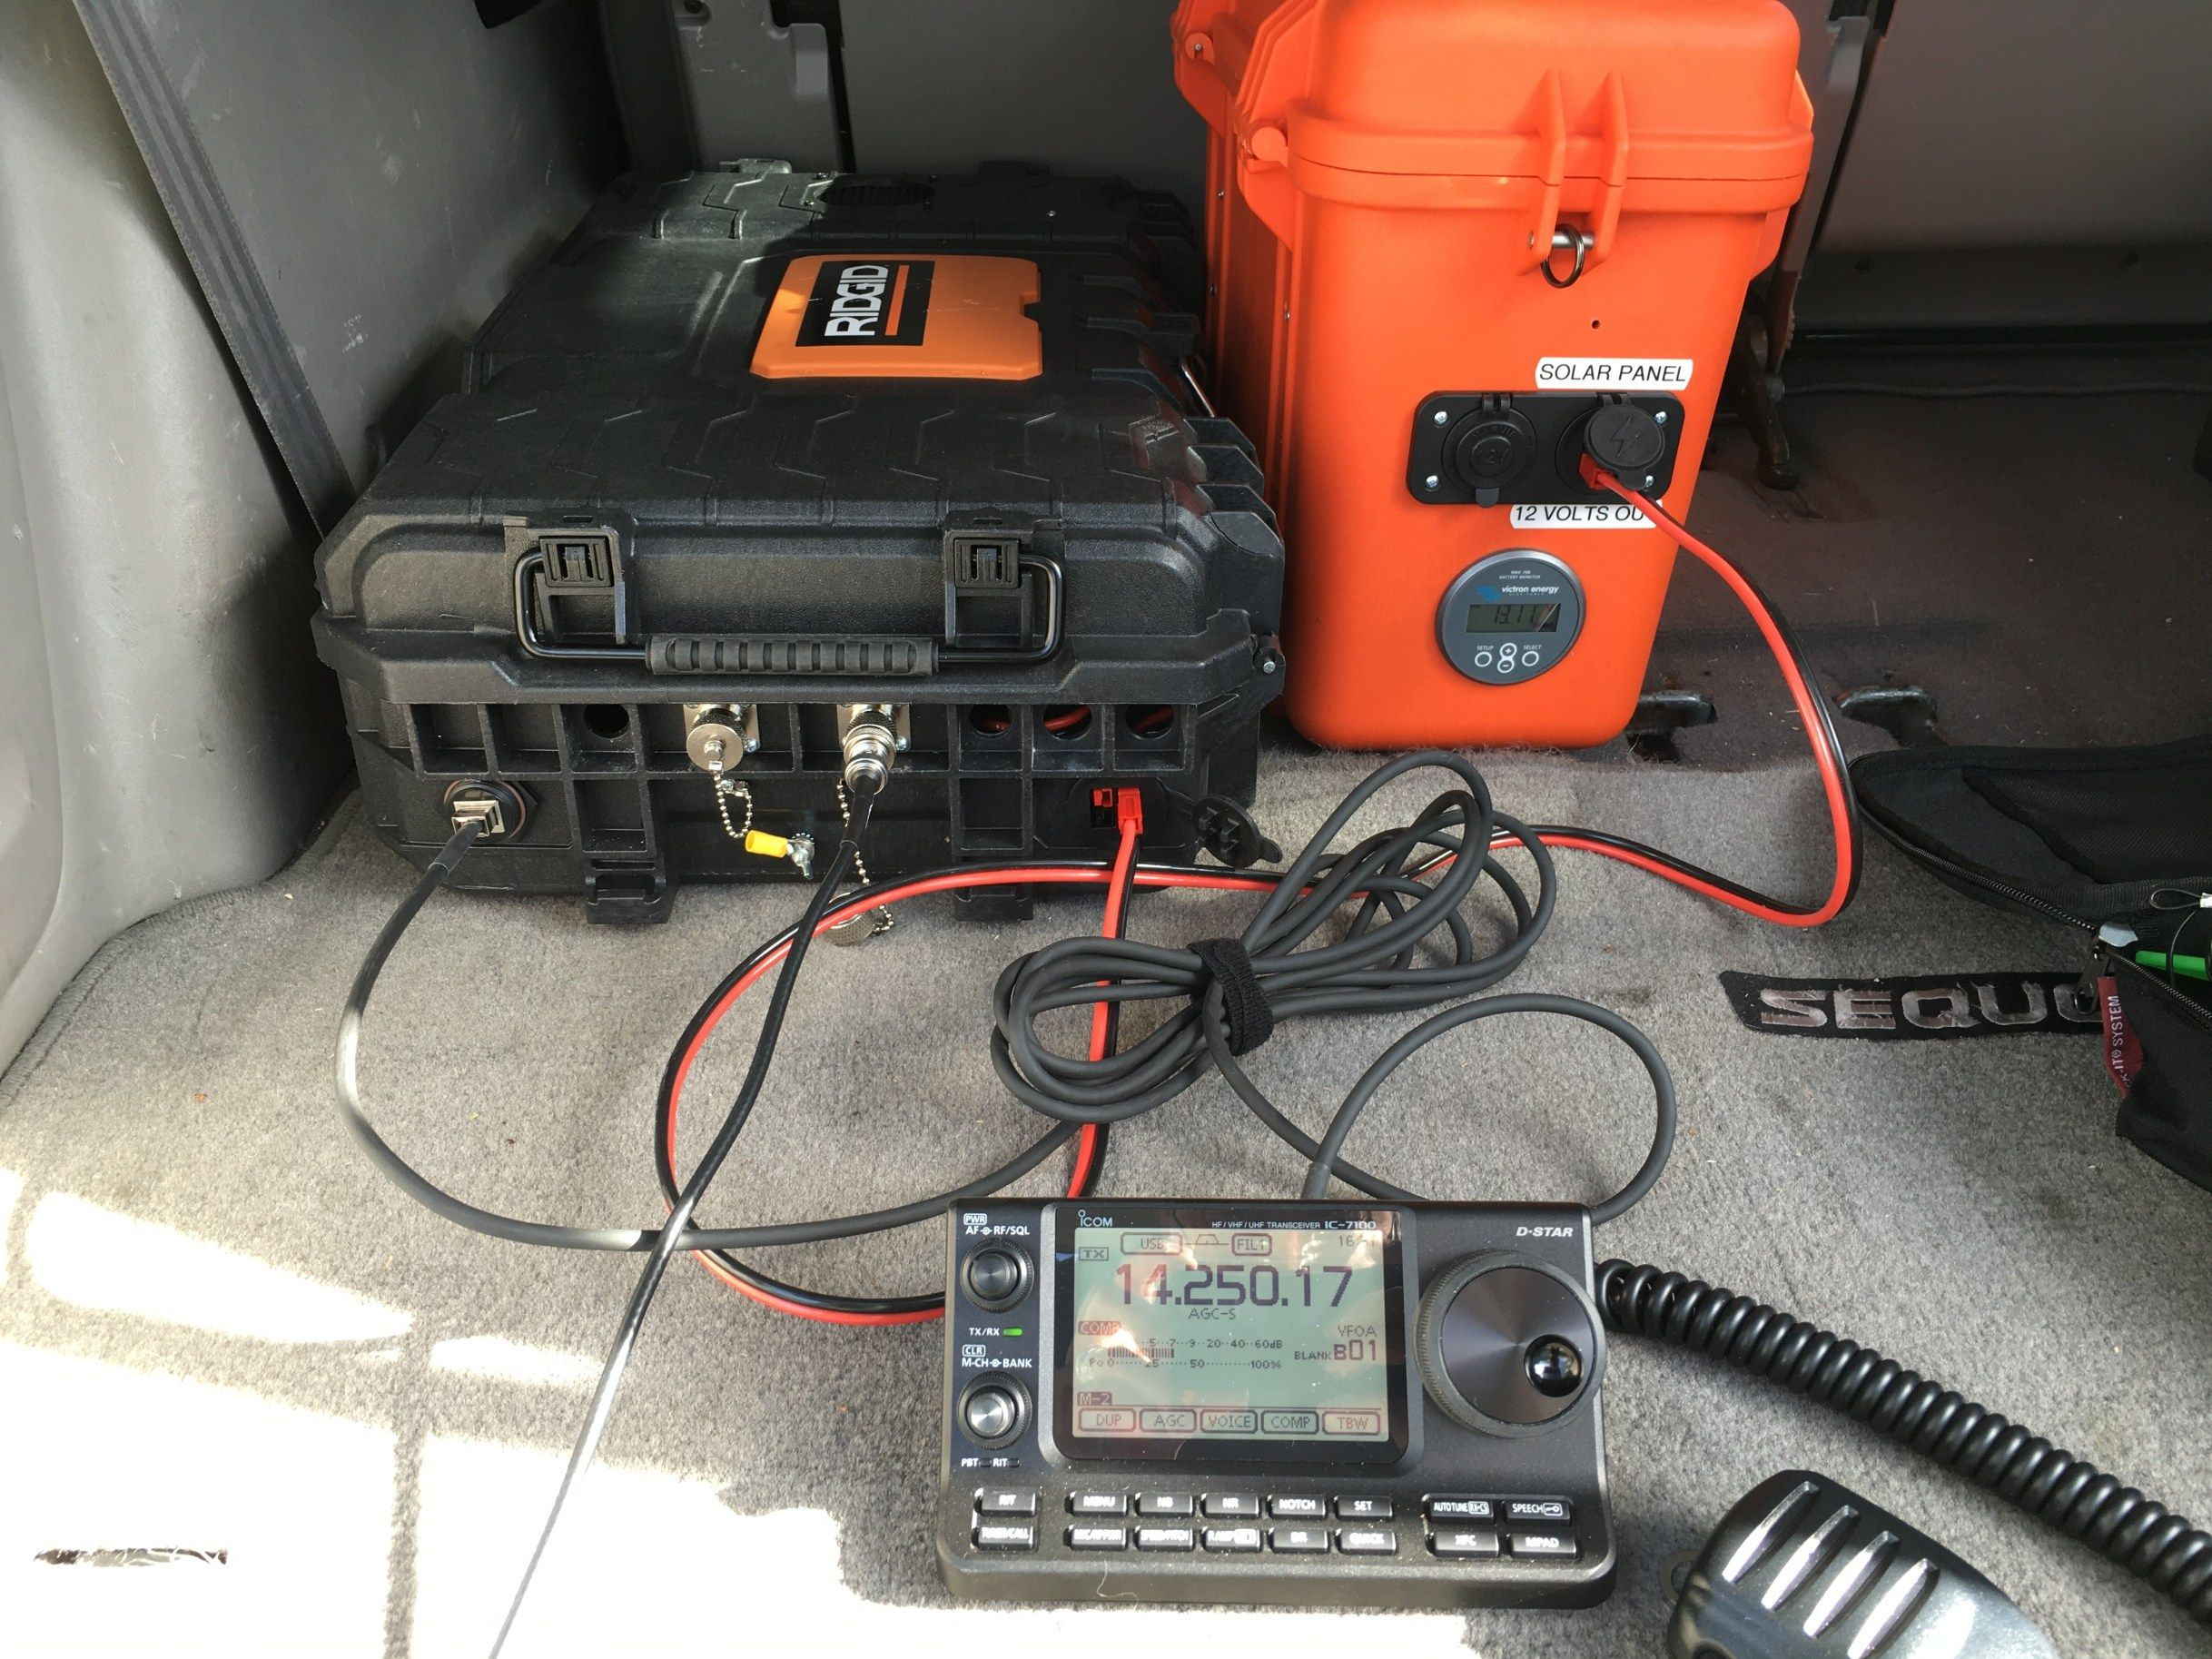 This weekend is the CQ WPX contest, a great opportunity to try out